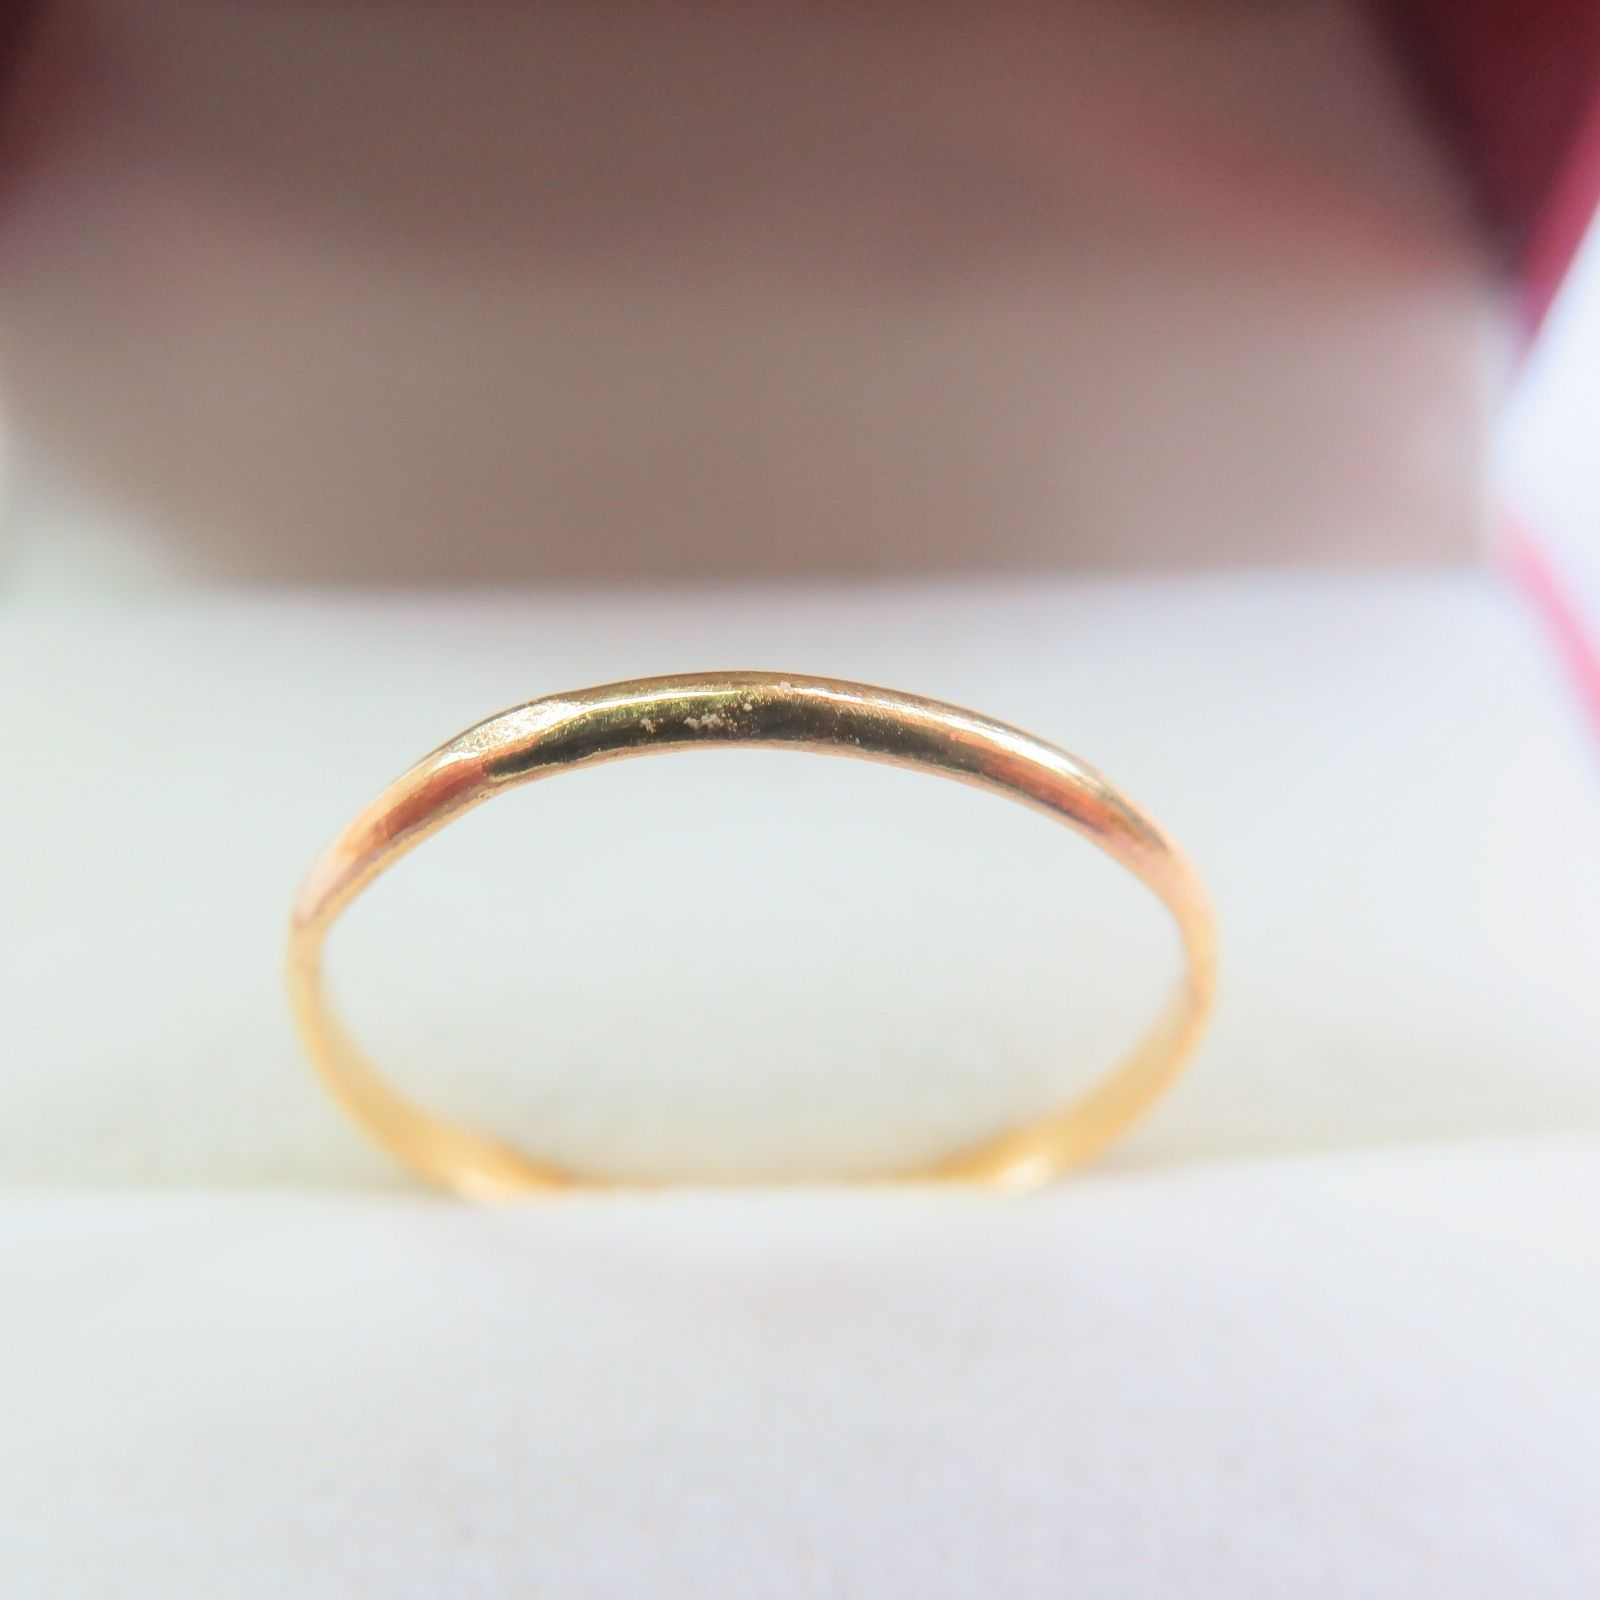 New 24K Yellow Gold Ring Womens Shiny Ring Band Size 7.75New 24K Yellow Gold Ring Womens Shiny Ring Band Size 7.75